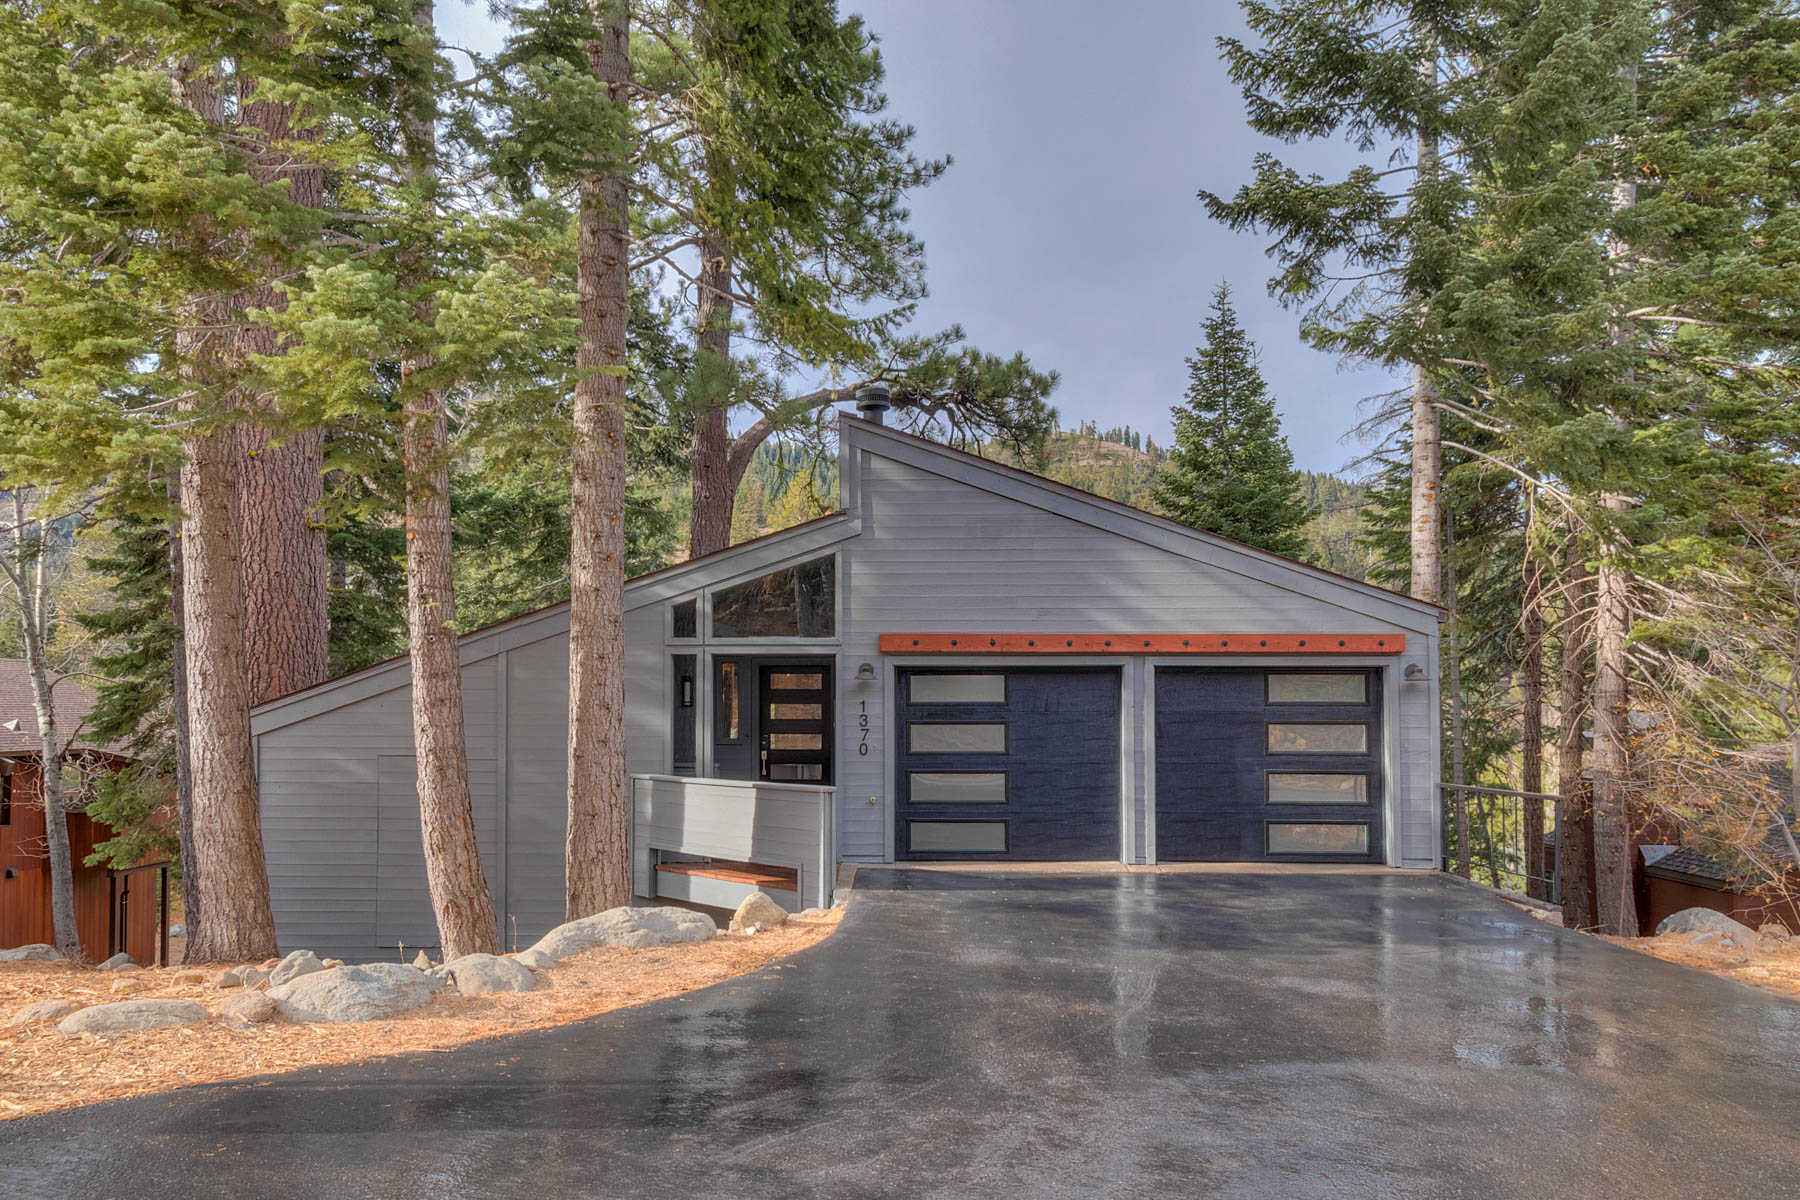 Single Family Home for Active at 1370 Pine Trail, Alpine Meadows, CA 1370 Pine Trail Alpine Meadows, California 96146 United States